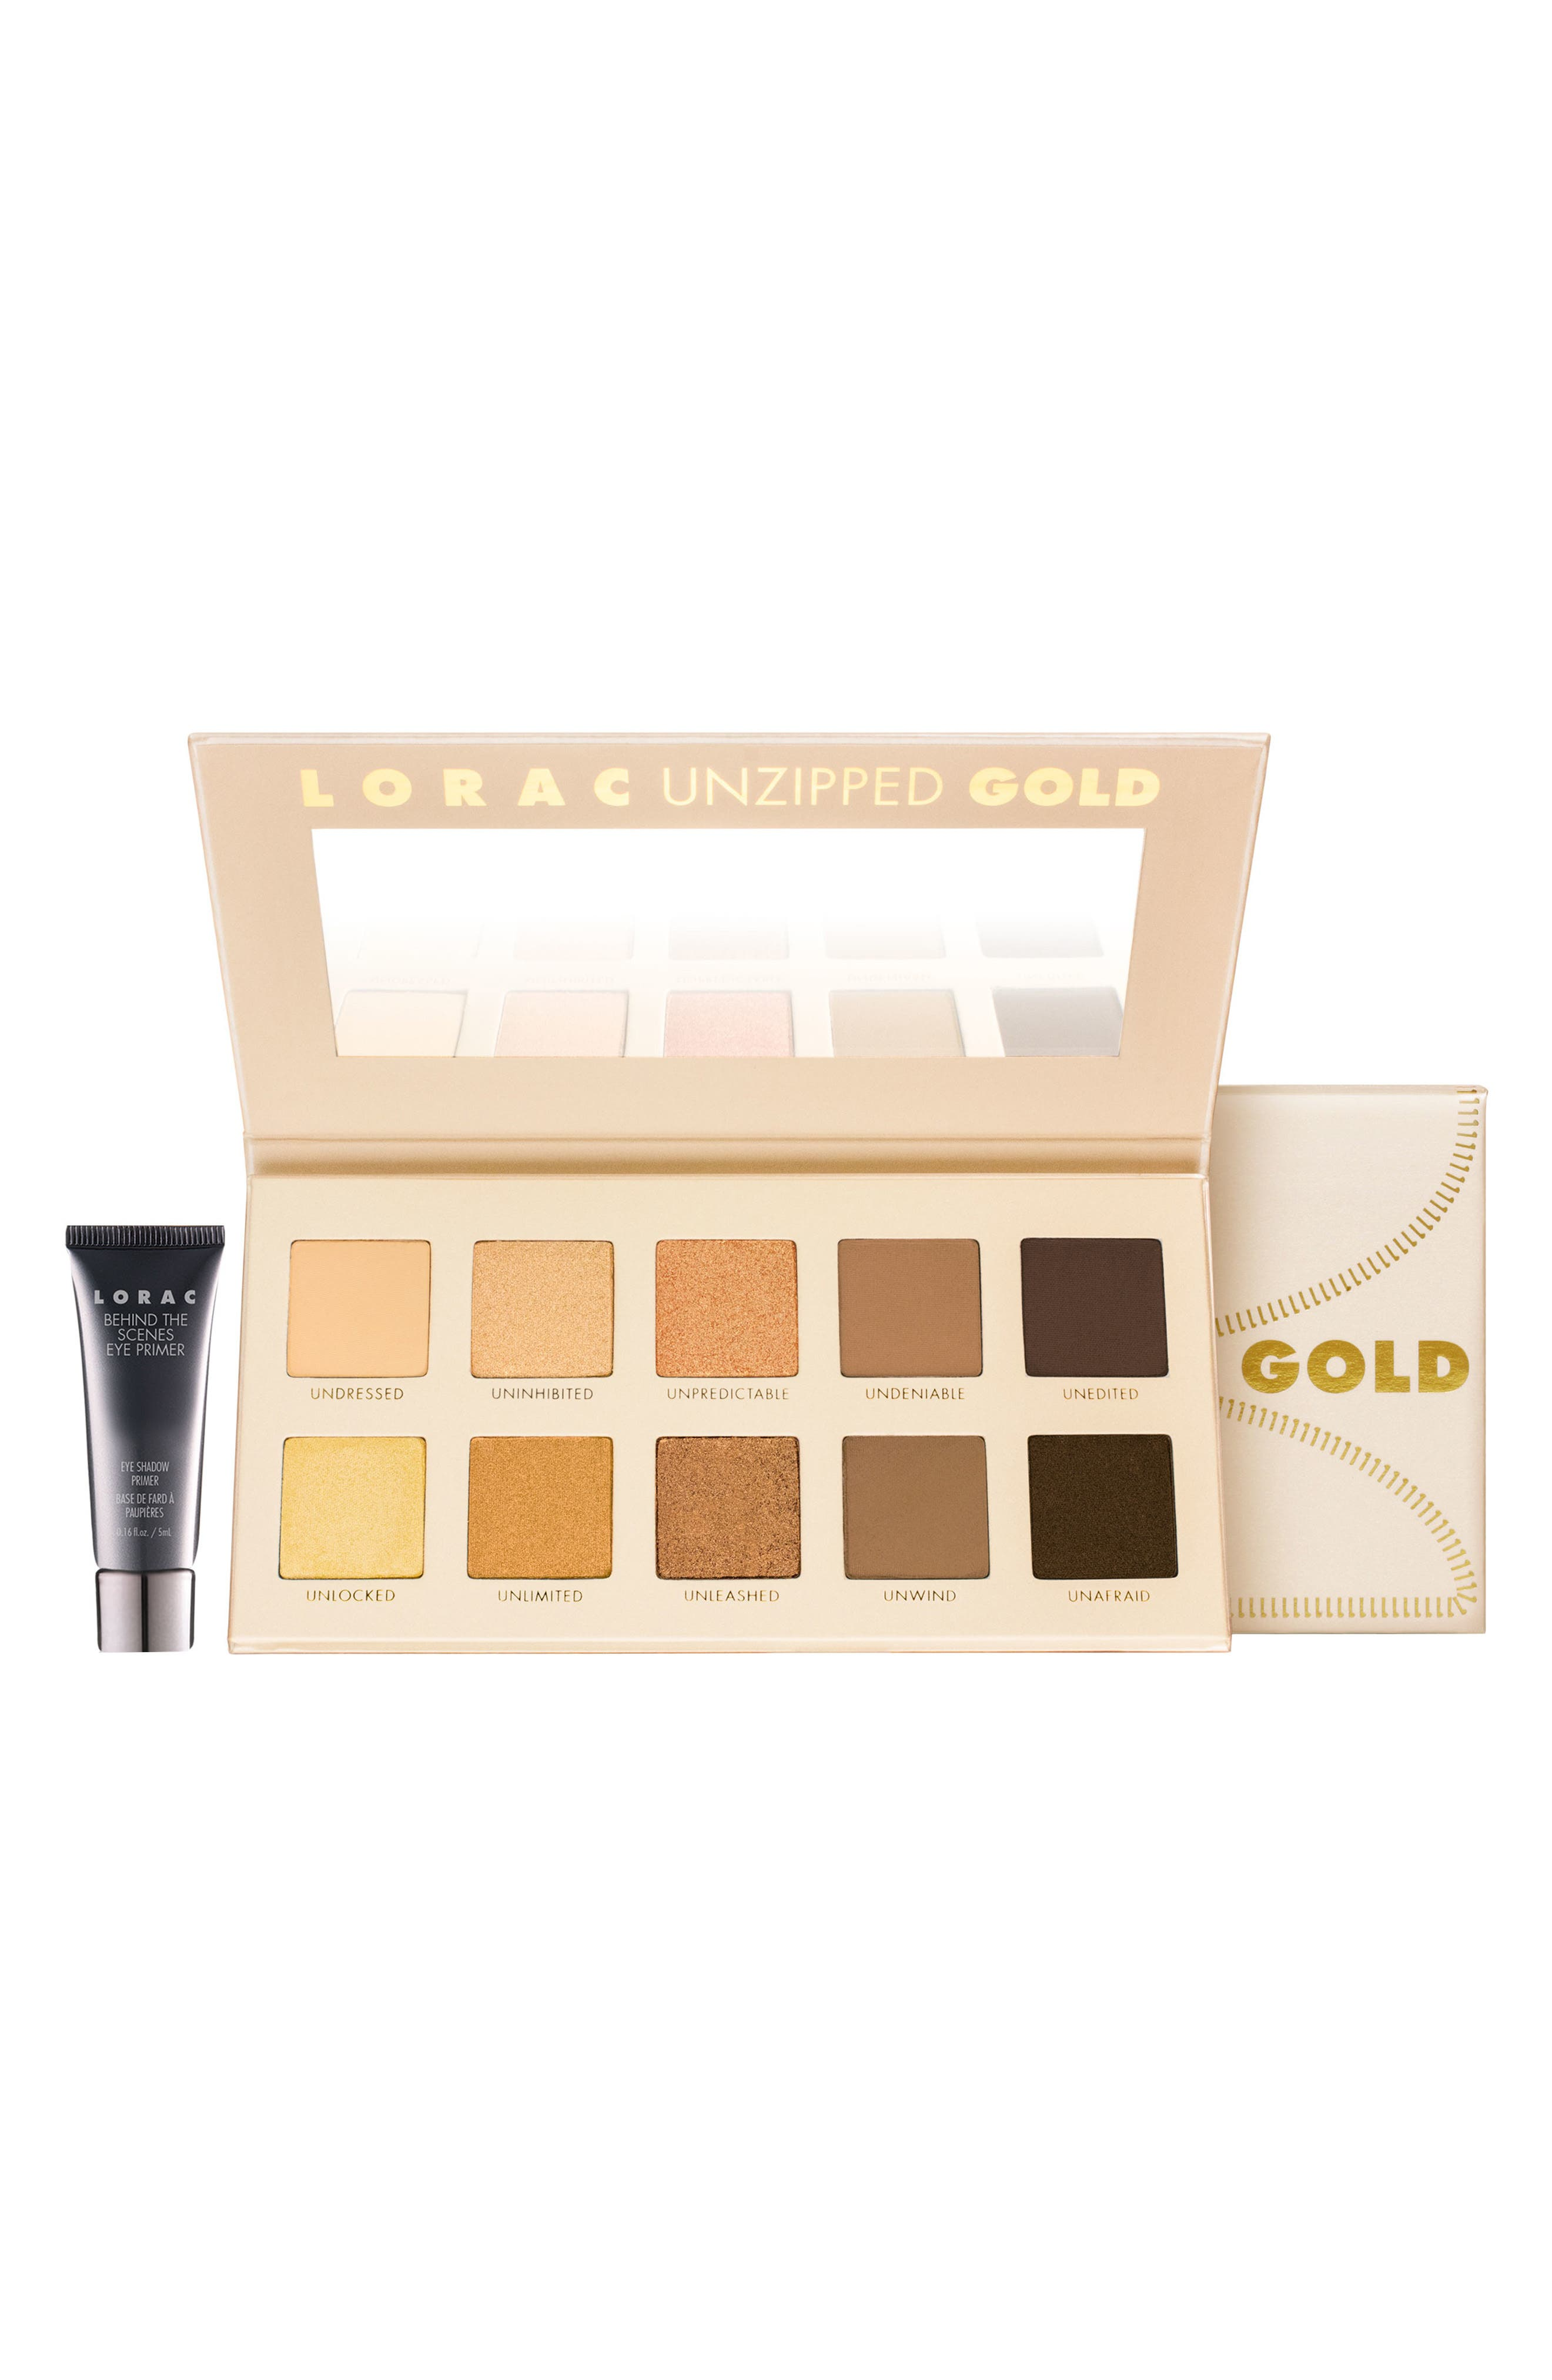 'Unzipped Gold' Eyeshadow Palette,                             Alternate thumbnail 5, color,                             NO COLOR